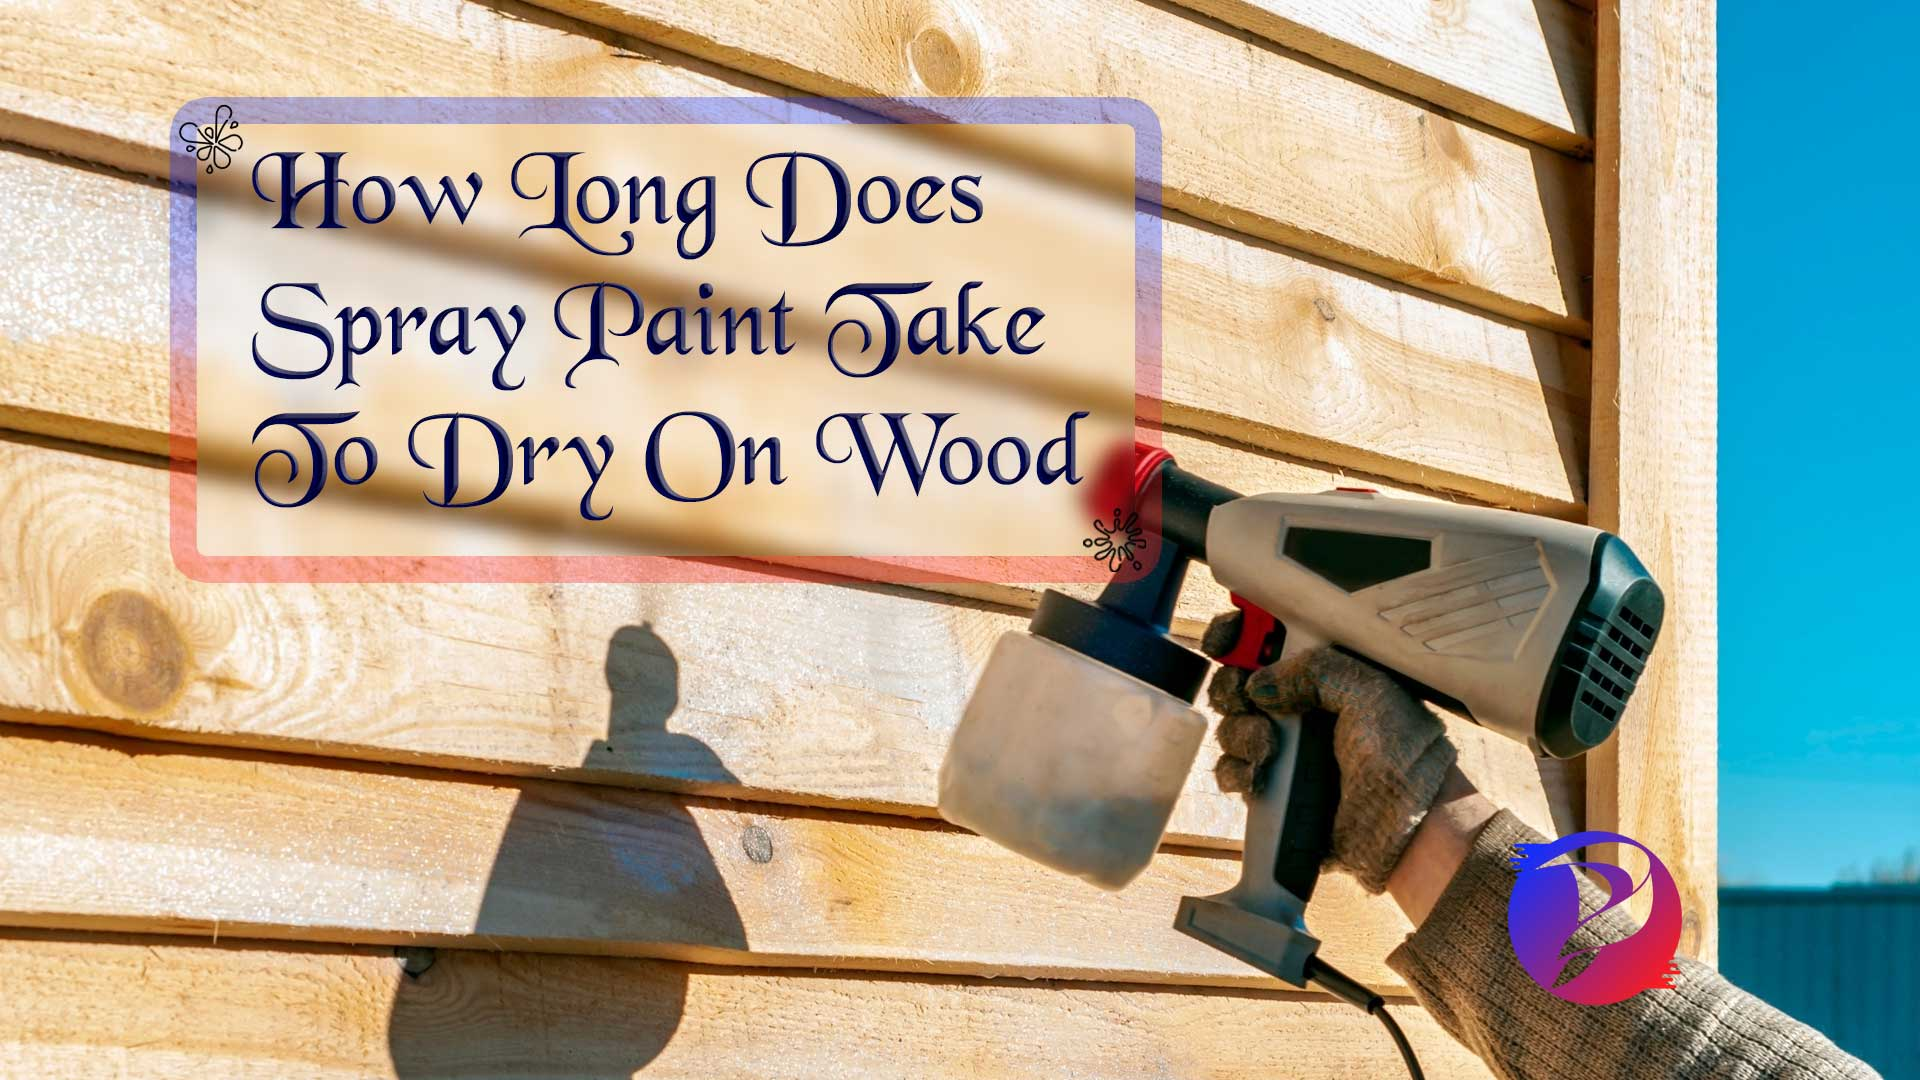 How long does spray paint take to dry on wood